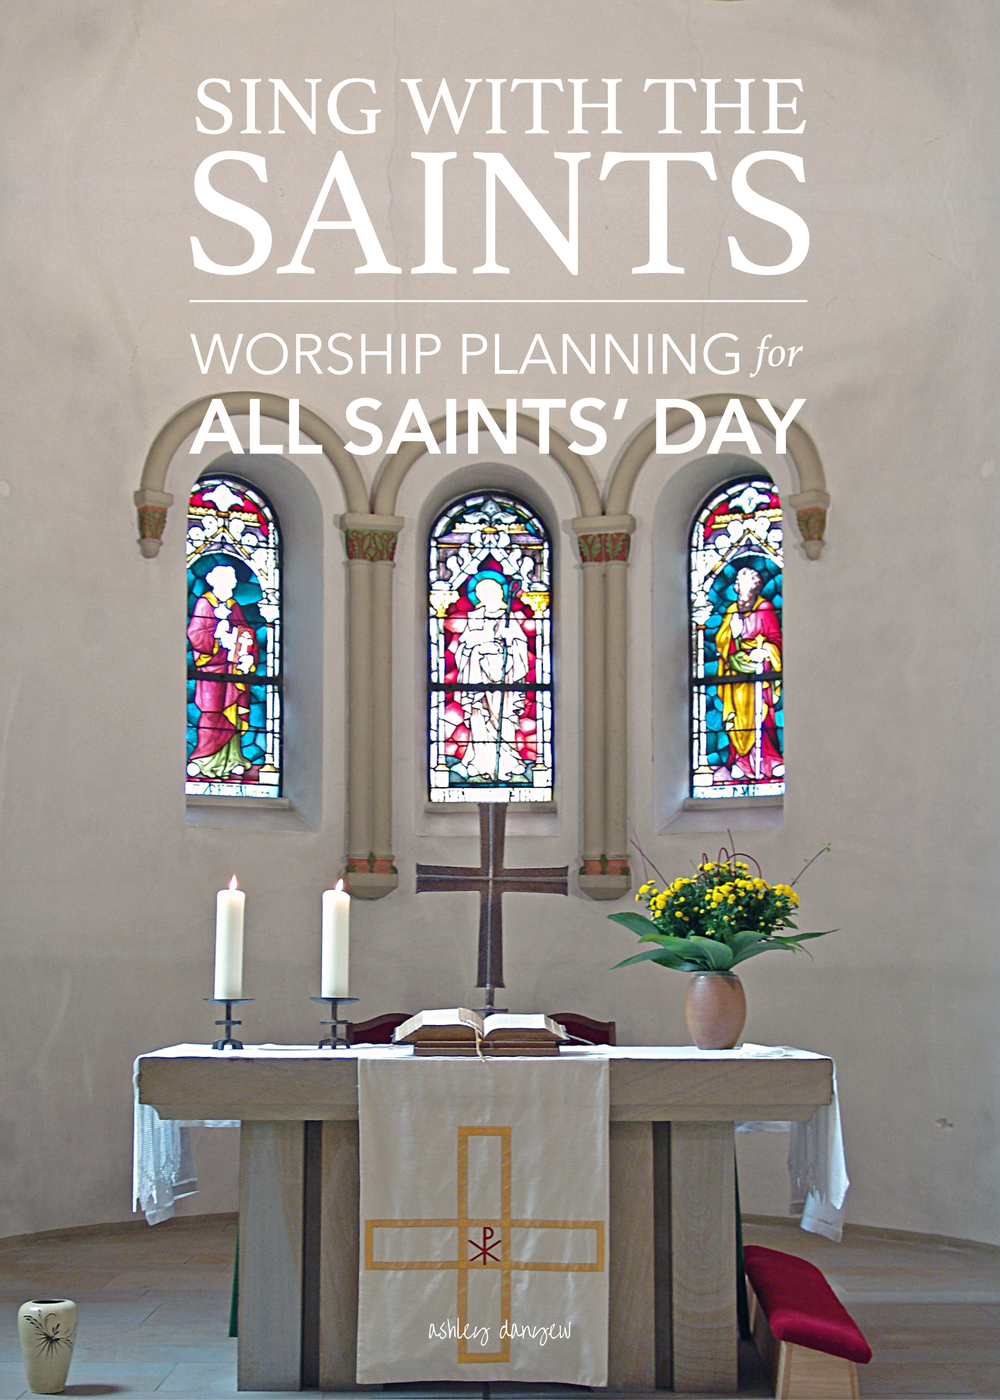 Sing-with-the-Saints-Worship-Planning-for-All-Saints-Day-01.png